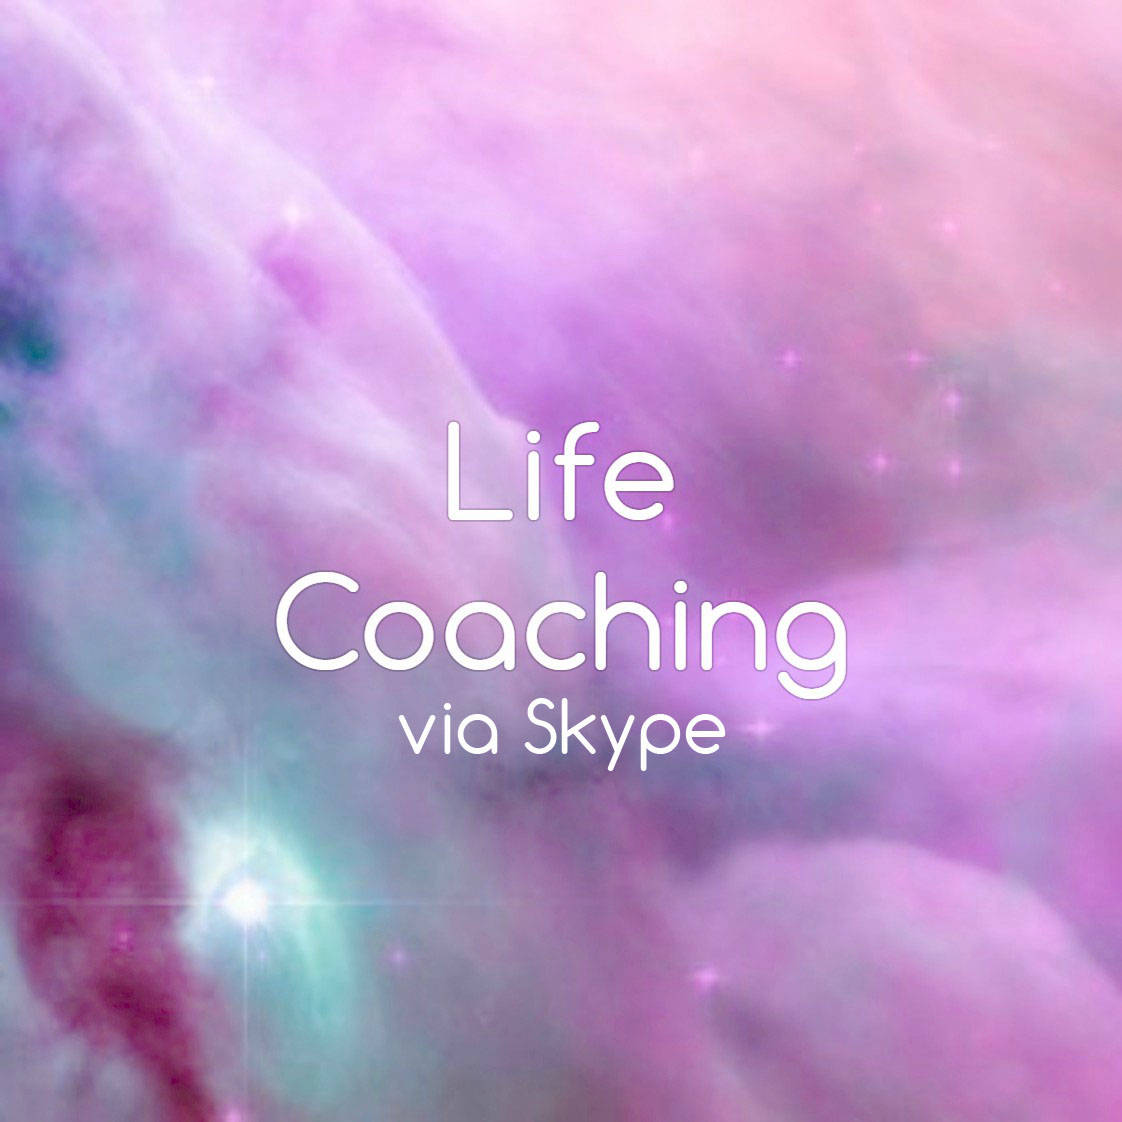 Life Coaching via Skype